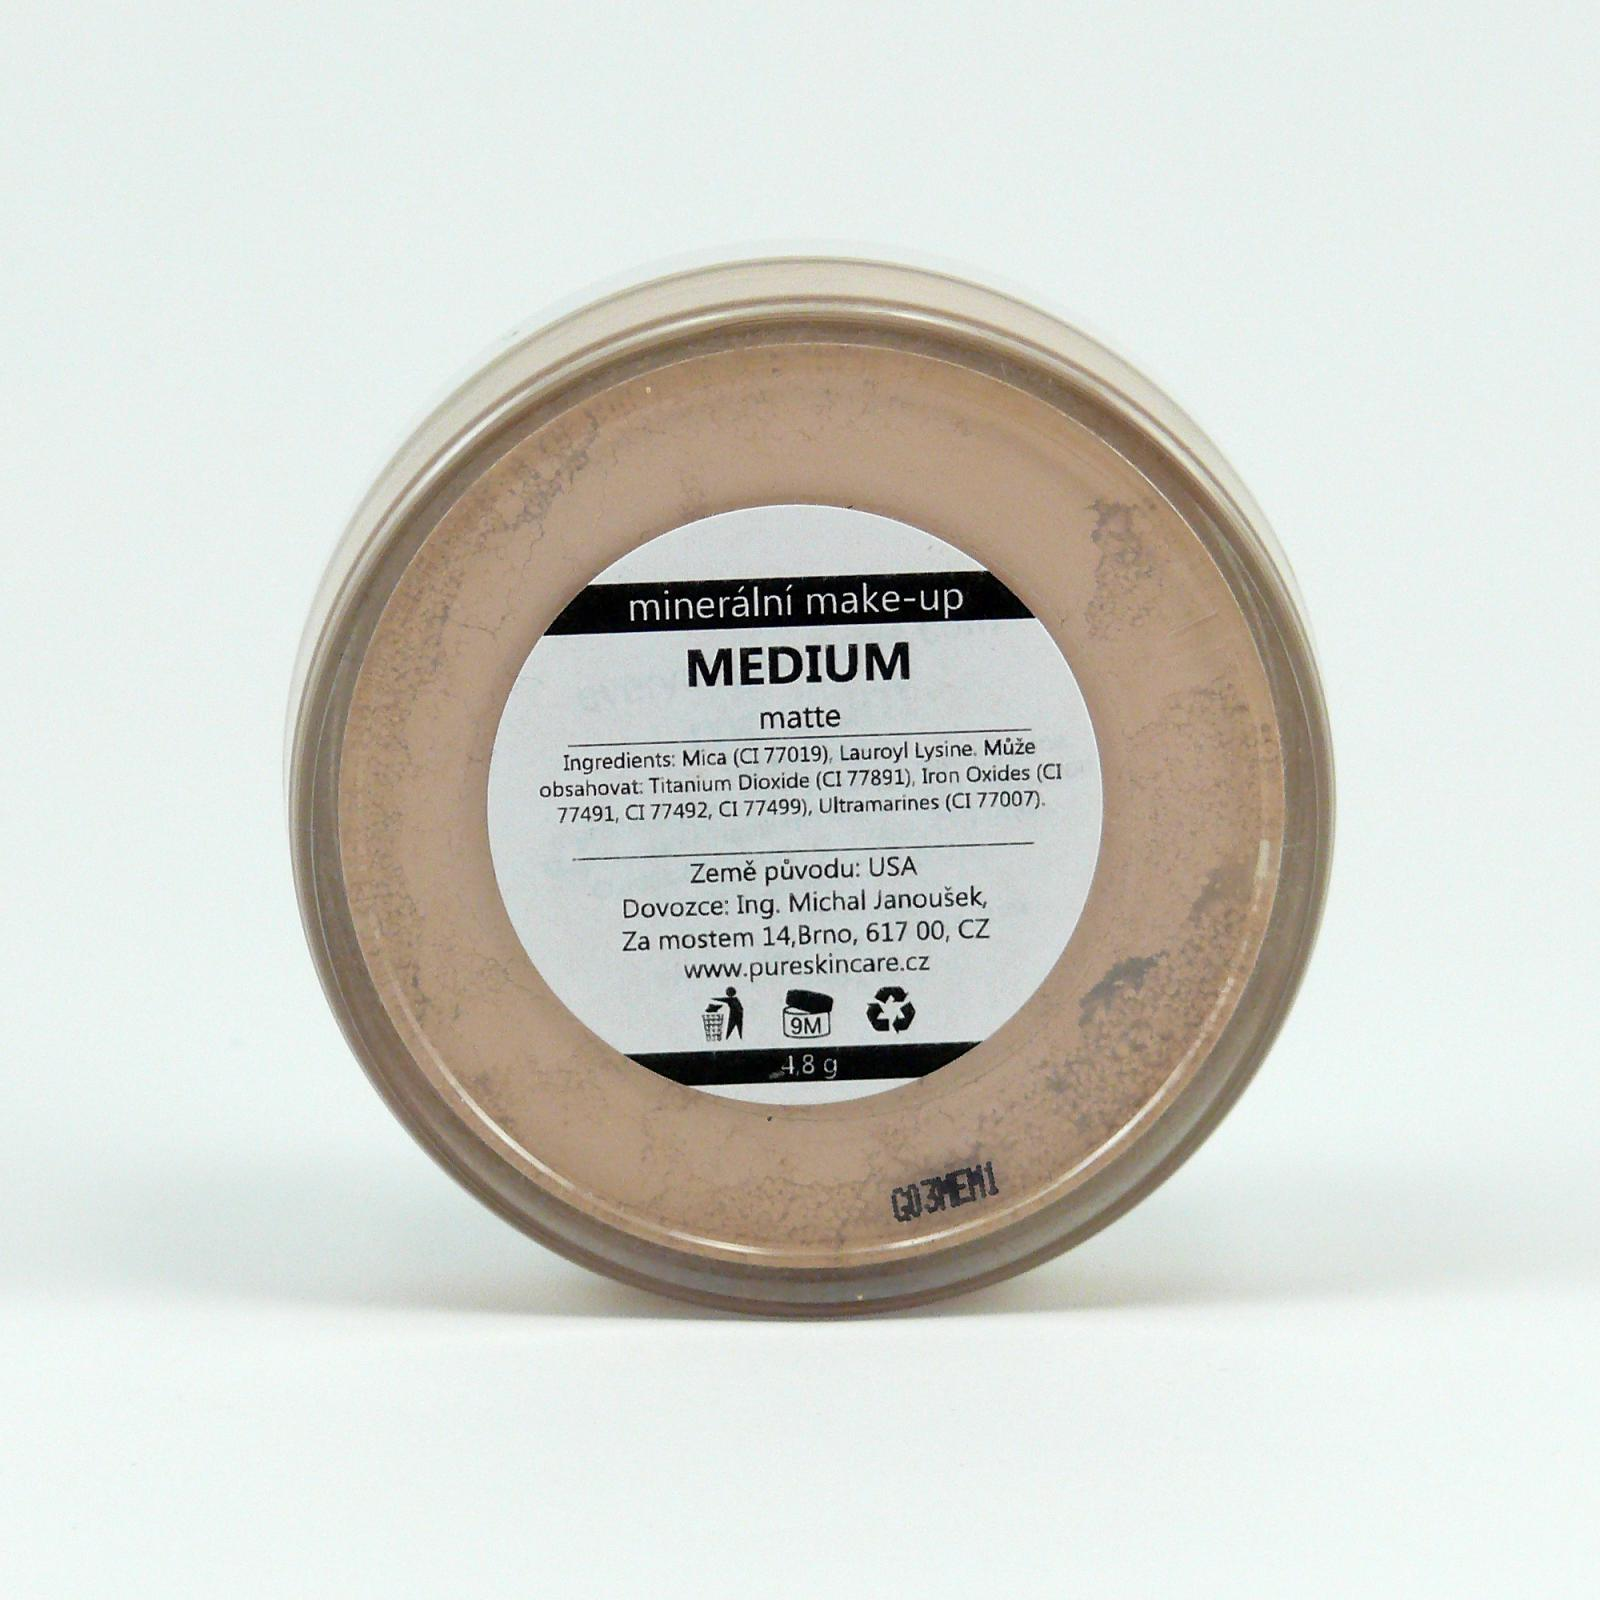 Everyday Minerals Minerální make-up Medium, matte 4,8 g